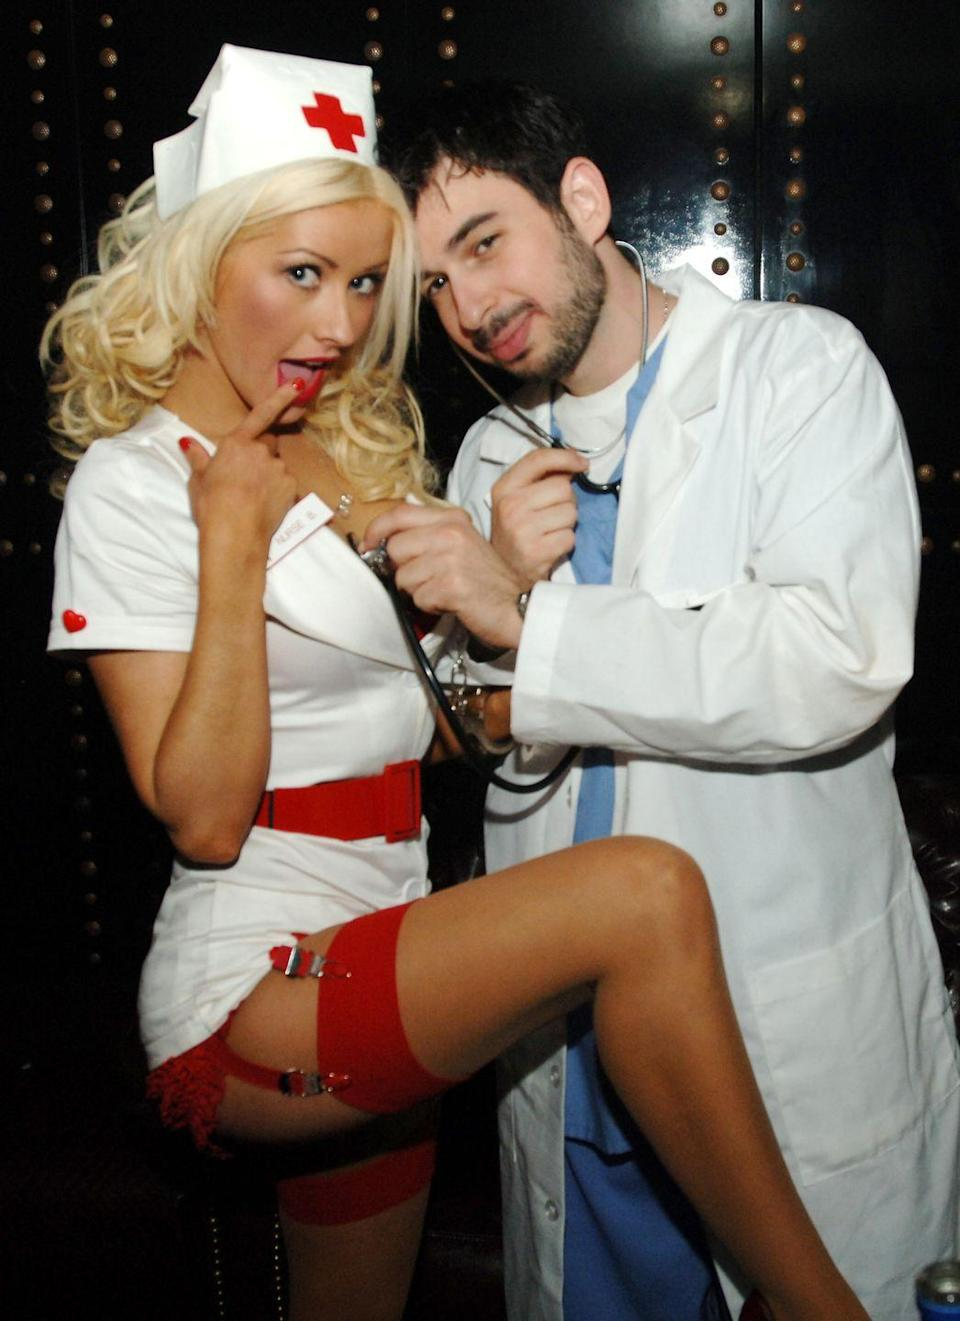 <p>Back in 2005, Christina Aguilera and Jordan Bratman attended a party at The Hard Rock Hotel and Casino in Las Vegas, Nevada, as a nurse and doctor combo. </p>